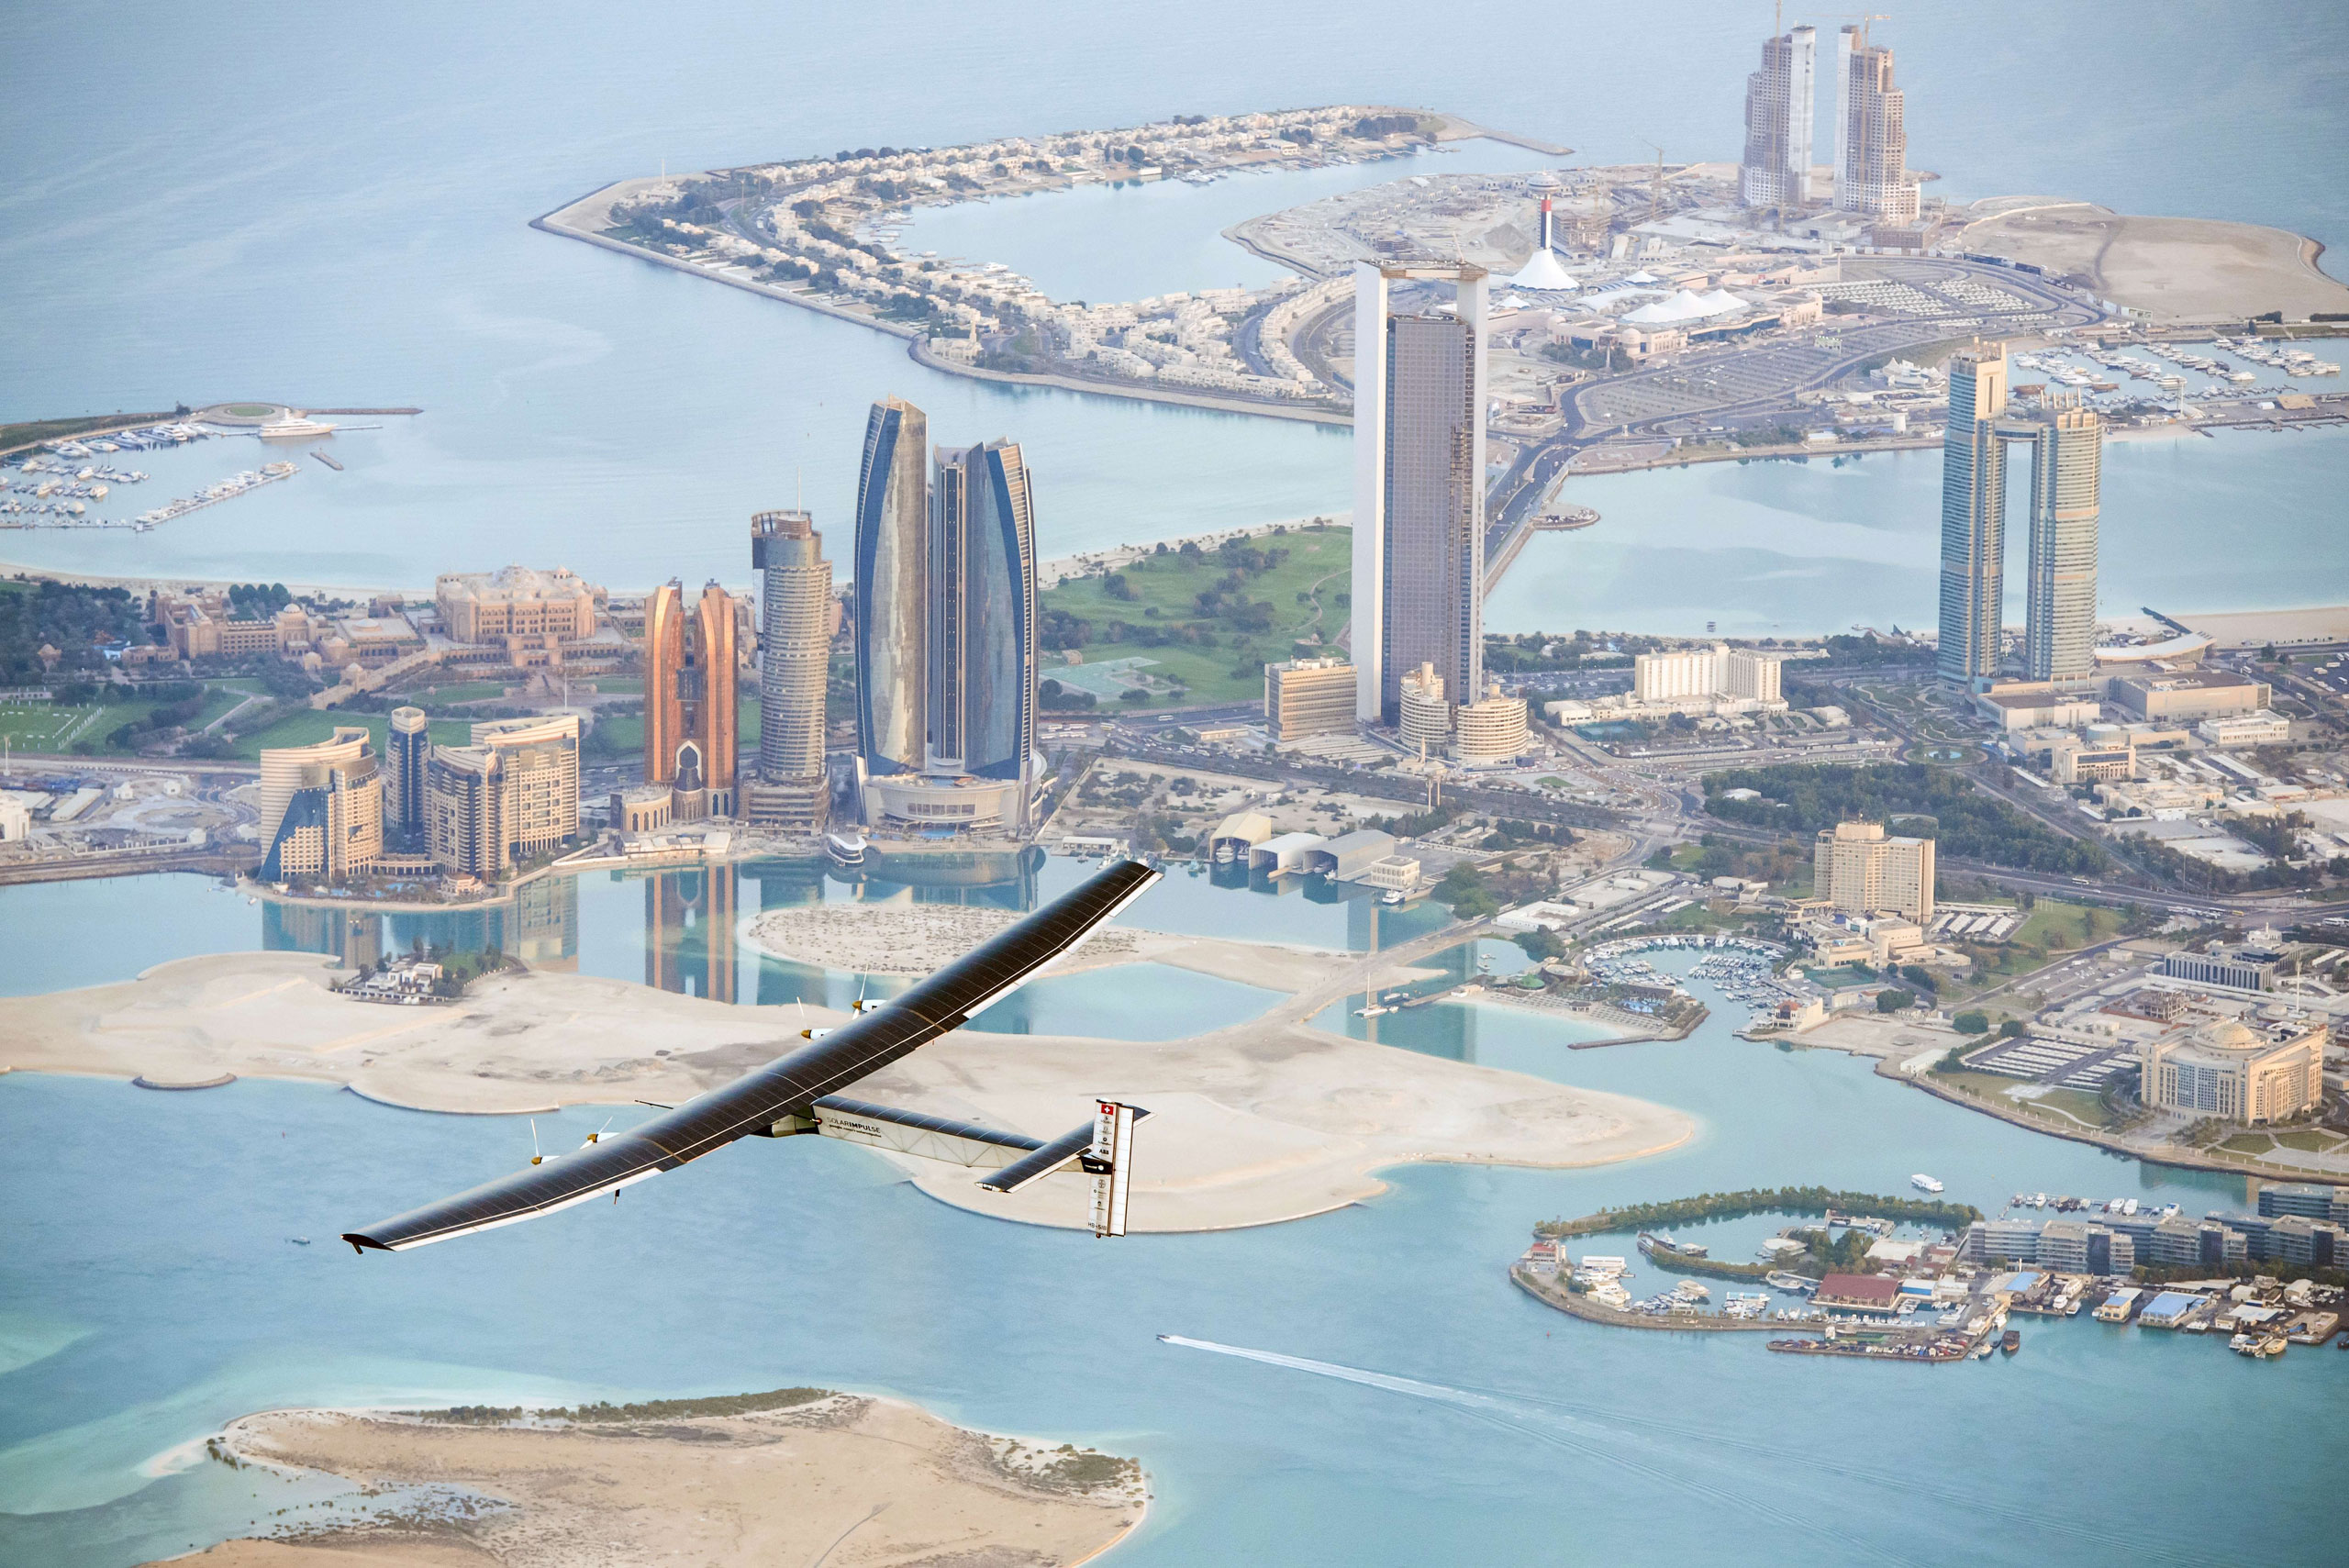 Solar Impulse 2 flies over the Emirati capital Abu Dhabi on Feb. 26, 2015 ahead of a planned round-the-world tour to promote alternative energy.